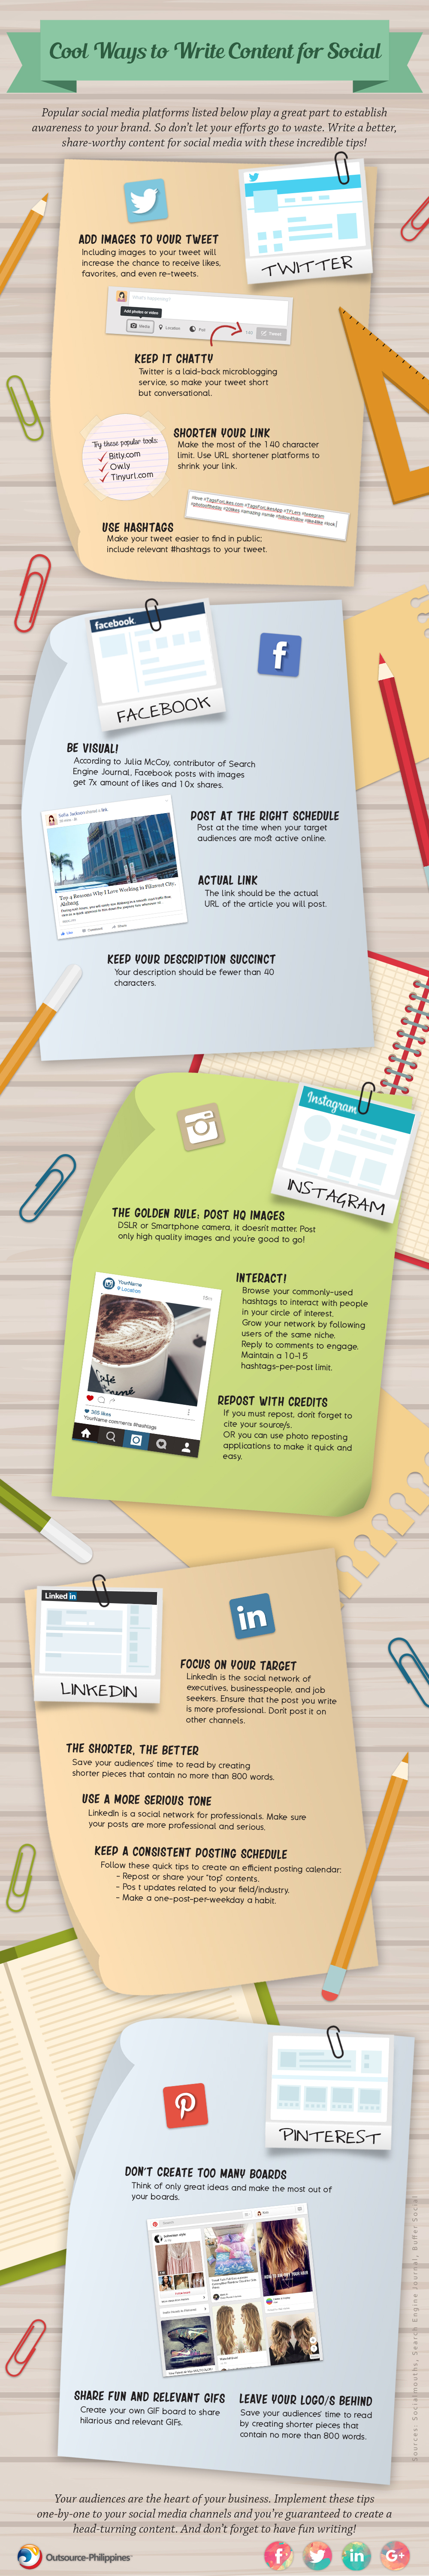 cool-ways-to-write-content-for-social-media-infographic_5715a2c74c26c